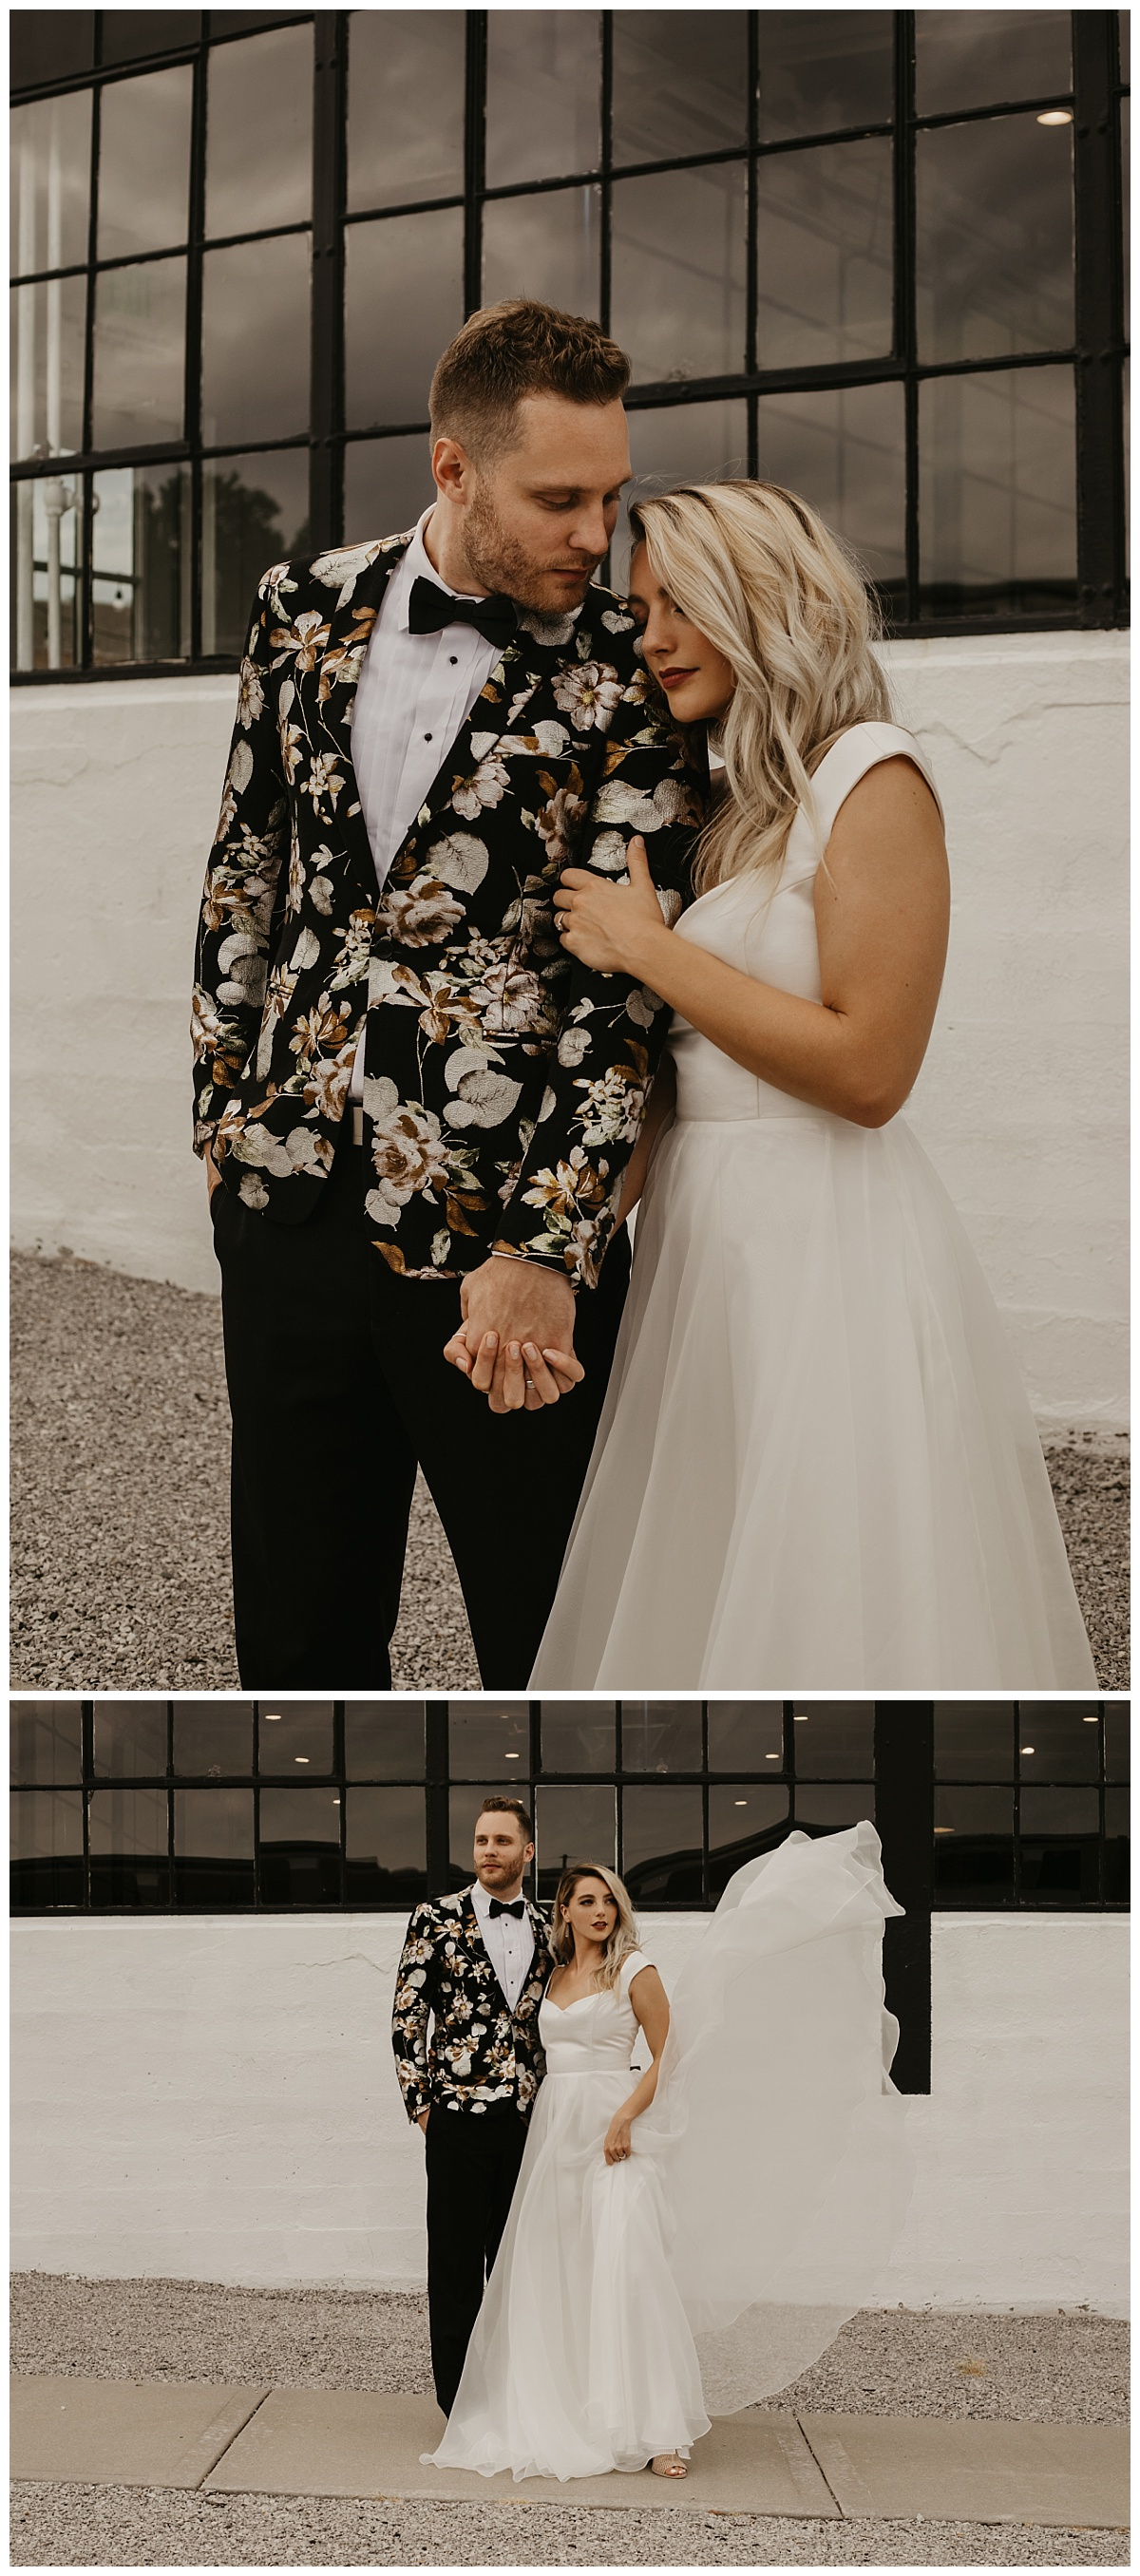 Urban Wedding | Kansas City Wedding Photographer | City Wedding | Minimalist Wedding